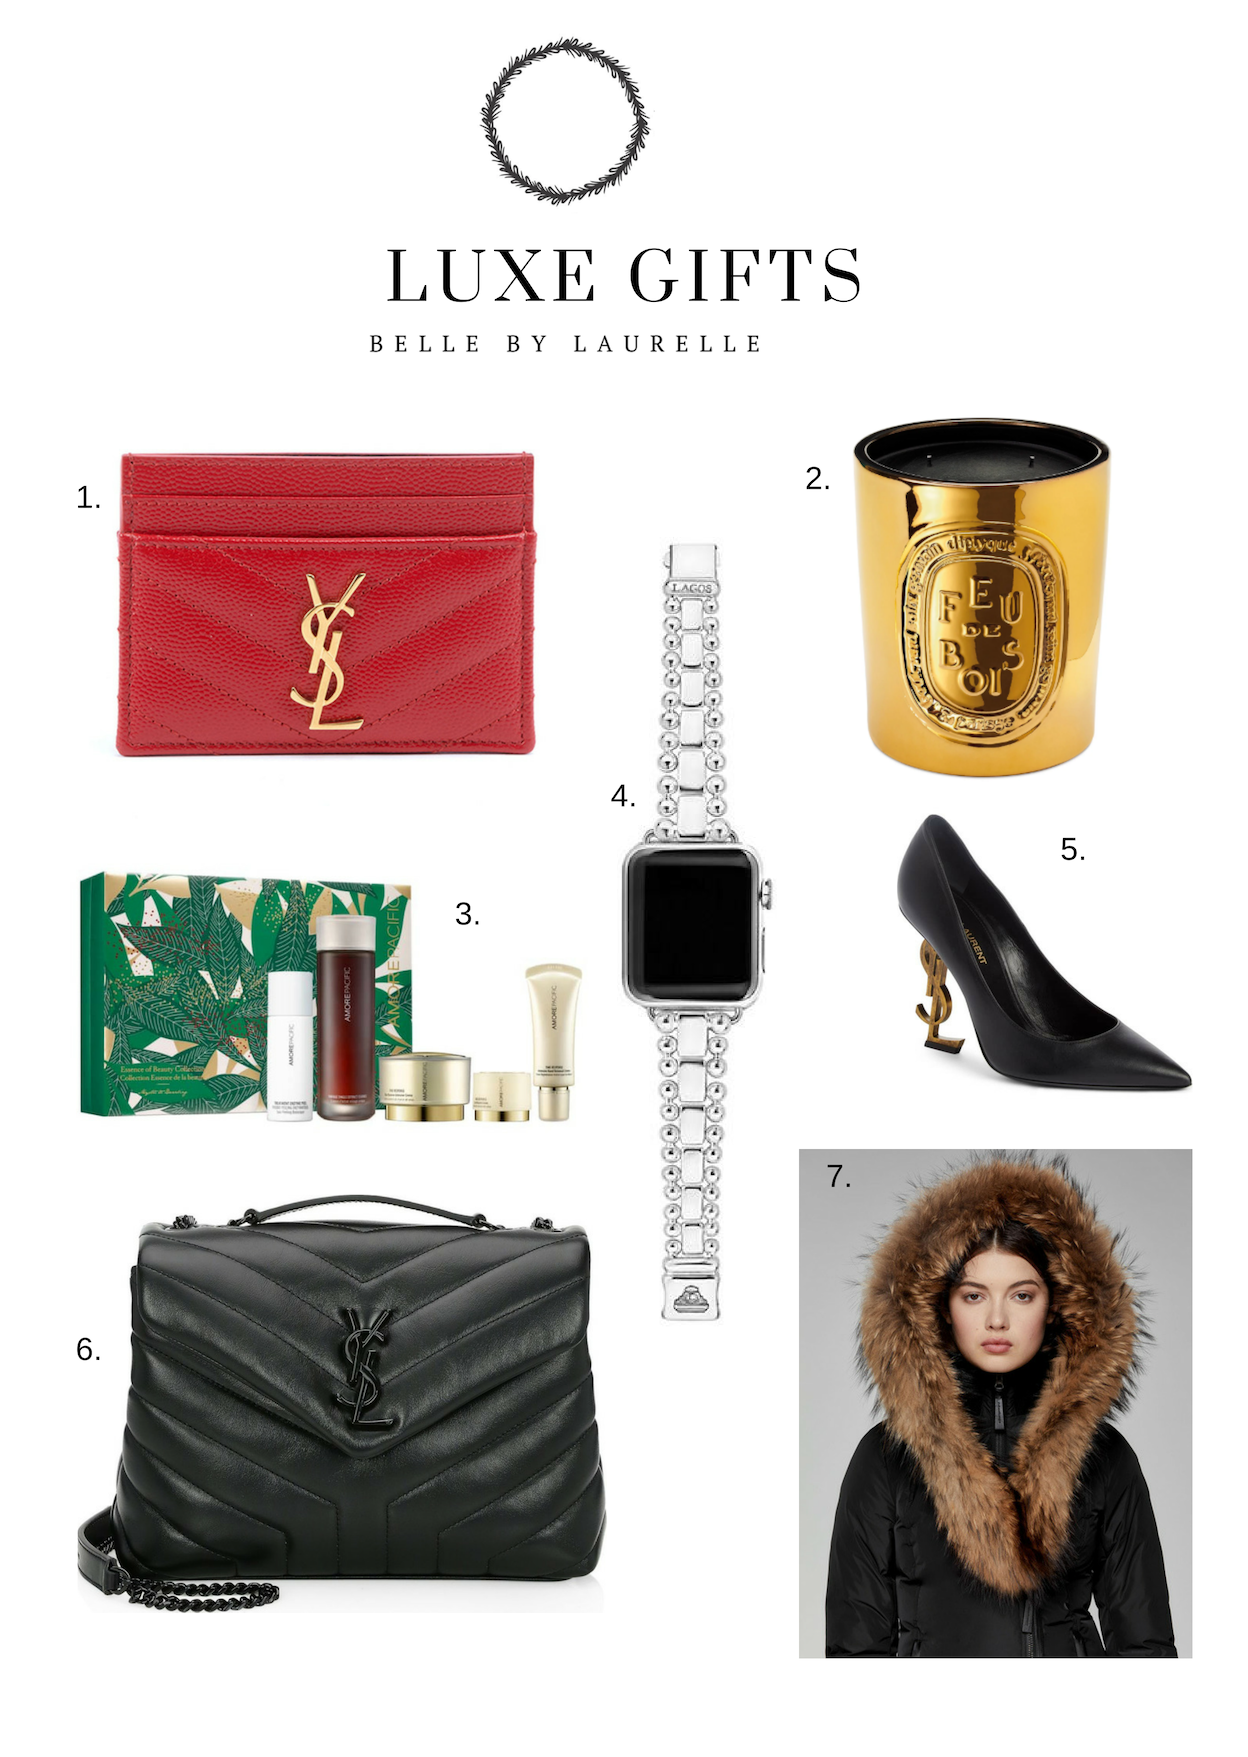 Special Luxe Gifts Christmas Gift Guide Belle by Laurelle Fashion Blog